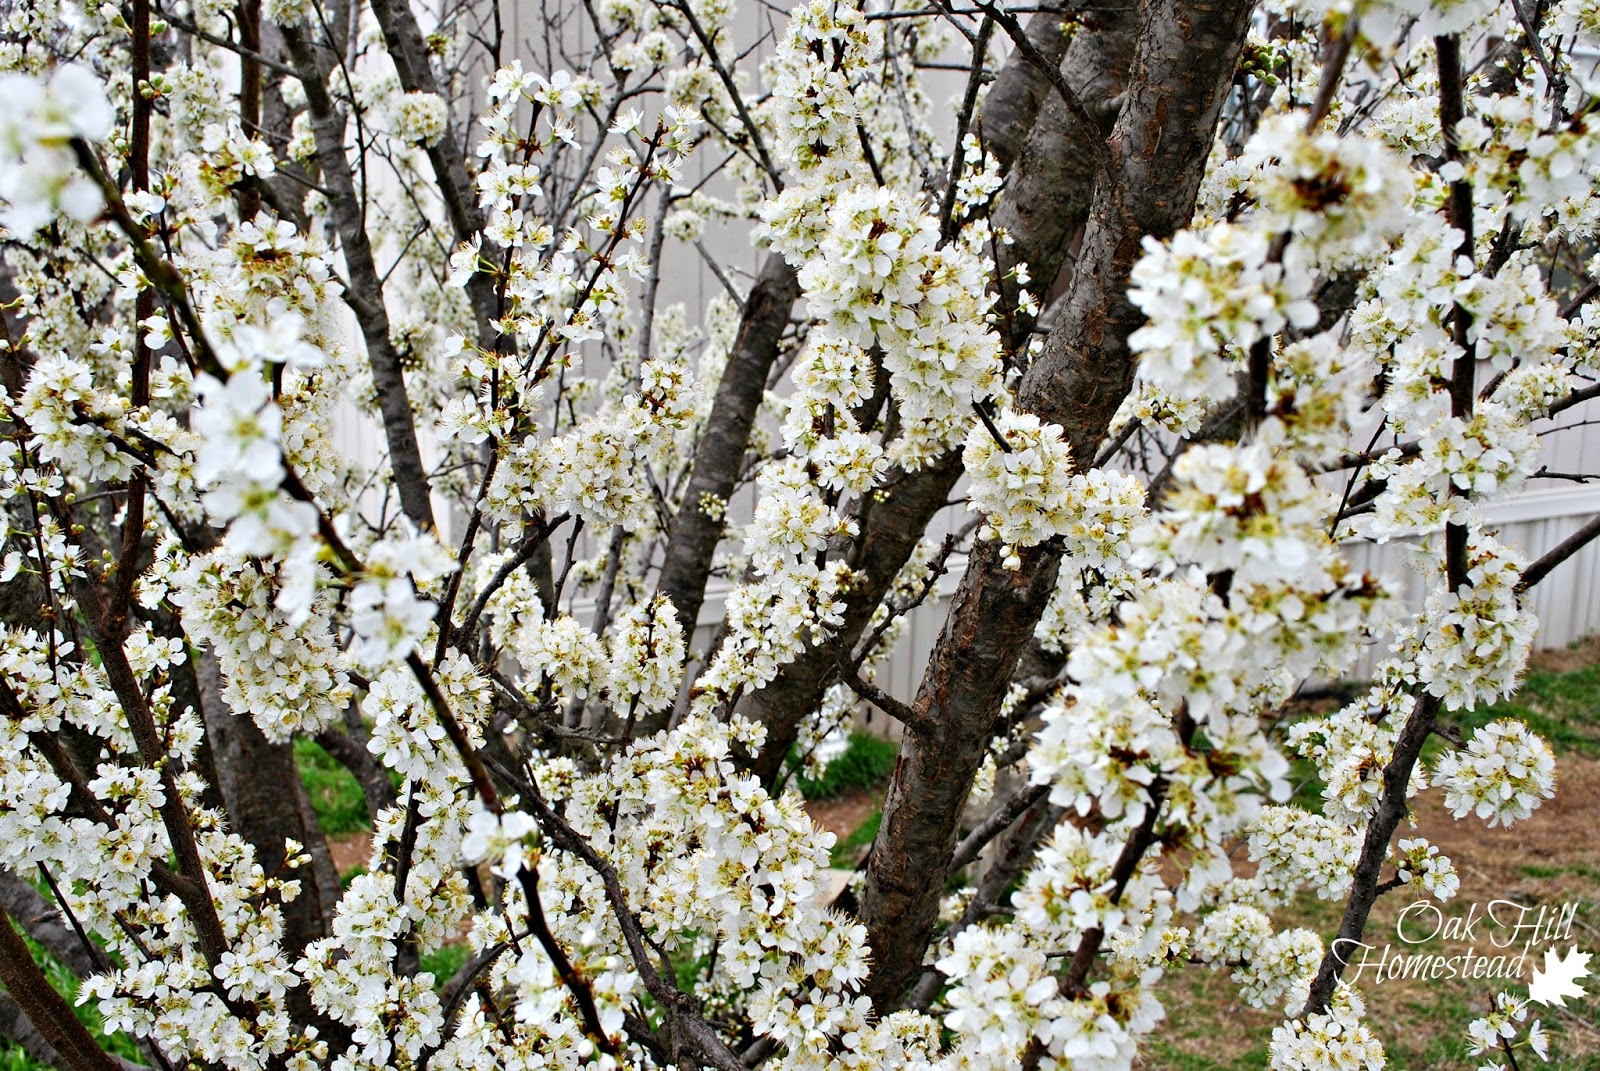 The orchard in spring, a story of anticipation and hope